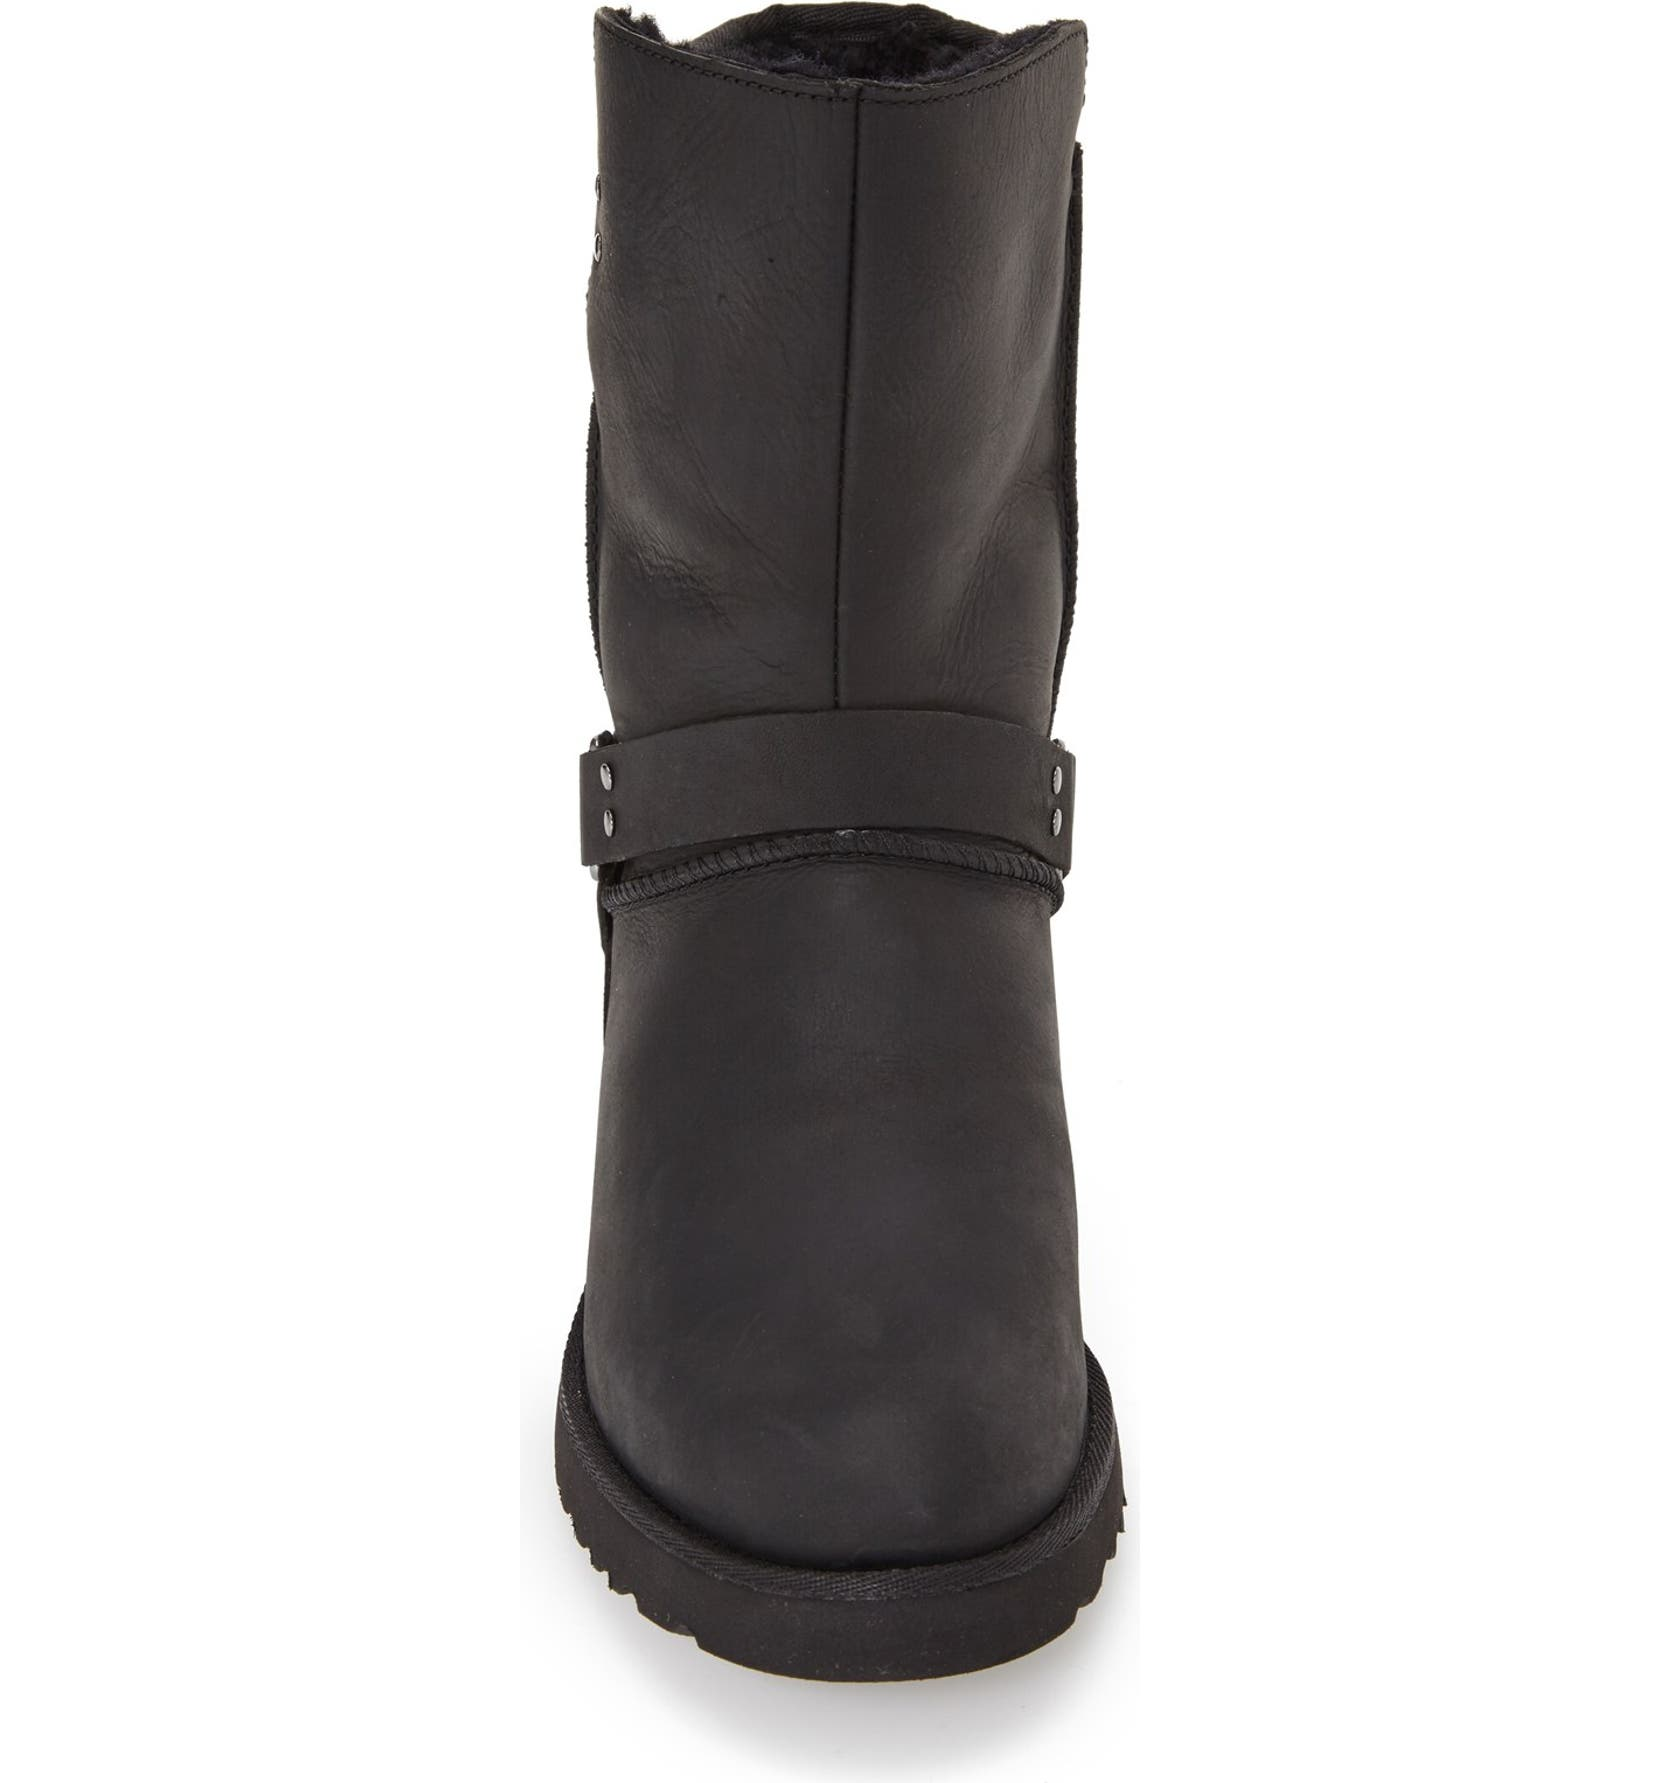 713d4ea88a8 Australia 'Maddox' Water Resistant Moto Boot